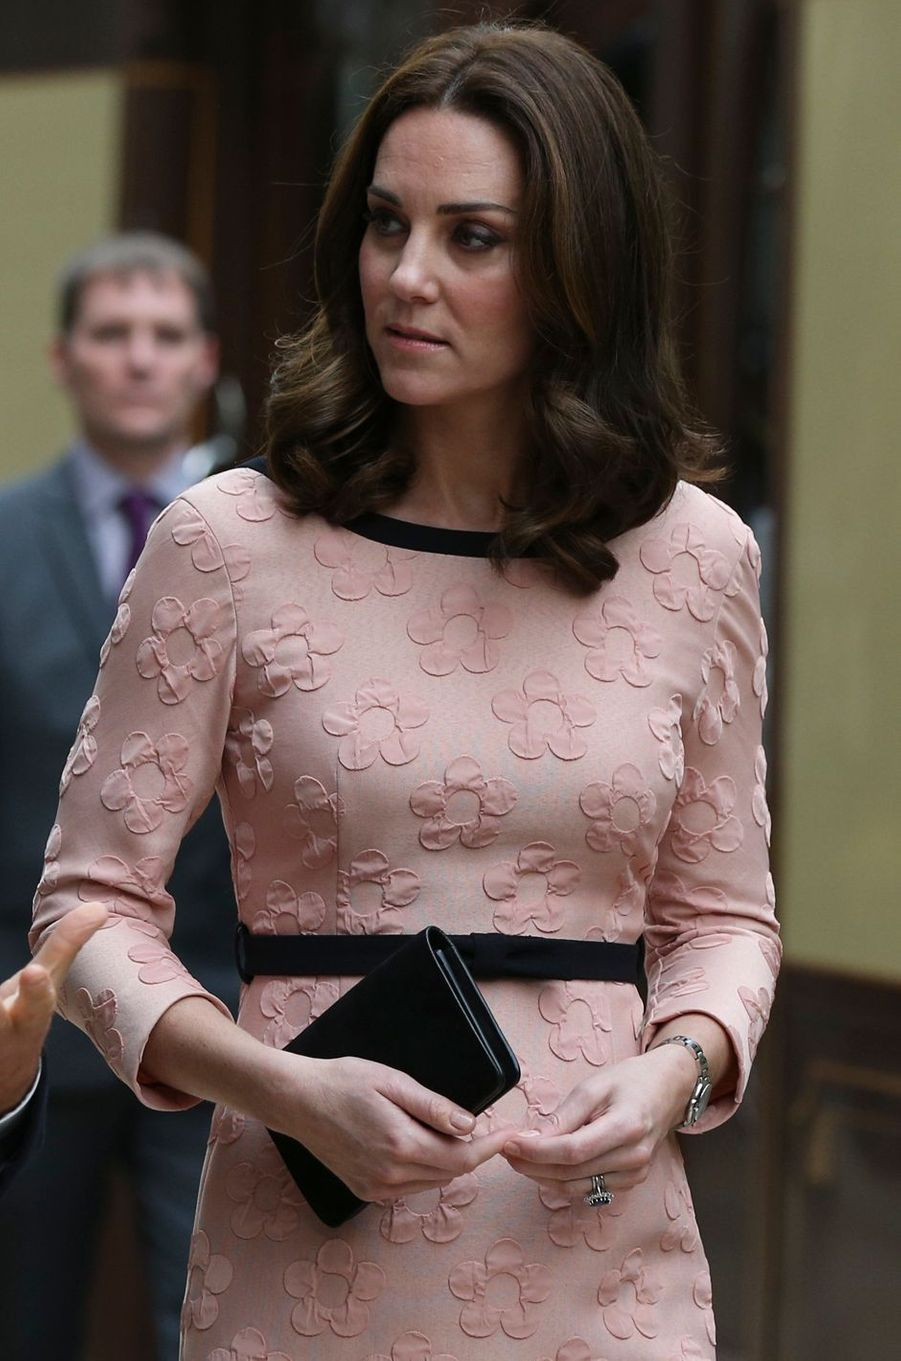 Détail du corsage de la robe de Kate Middleton à Londres, le 16 octobre 2017